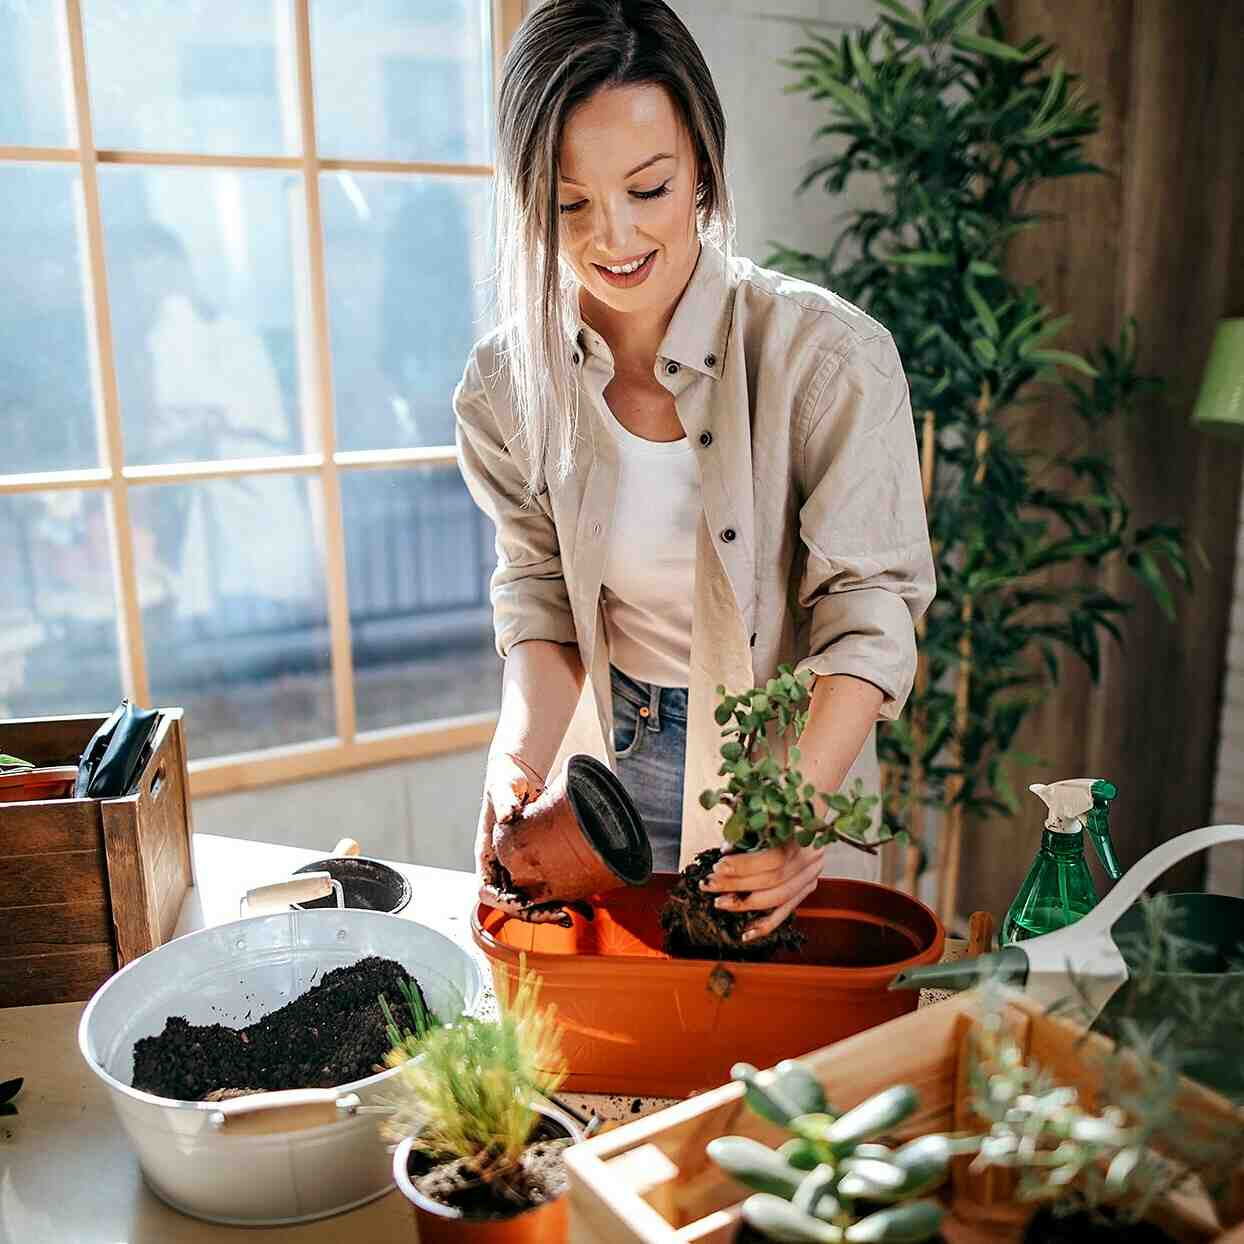 What is the disadvantages of gardening?